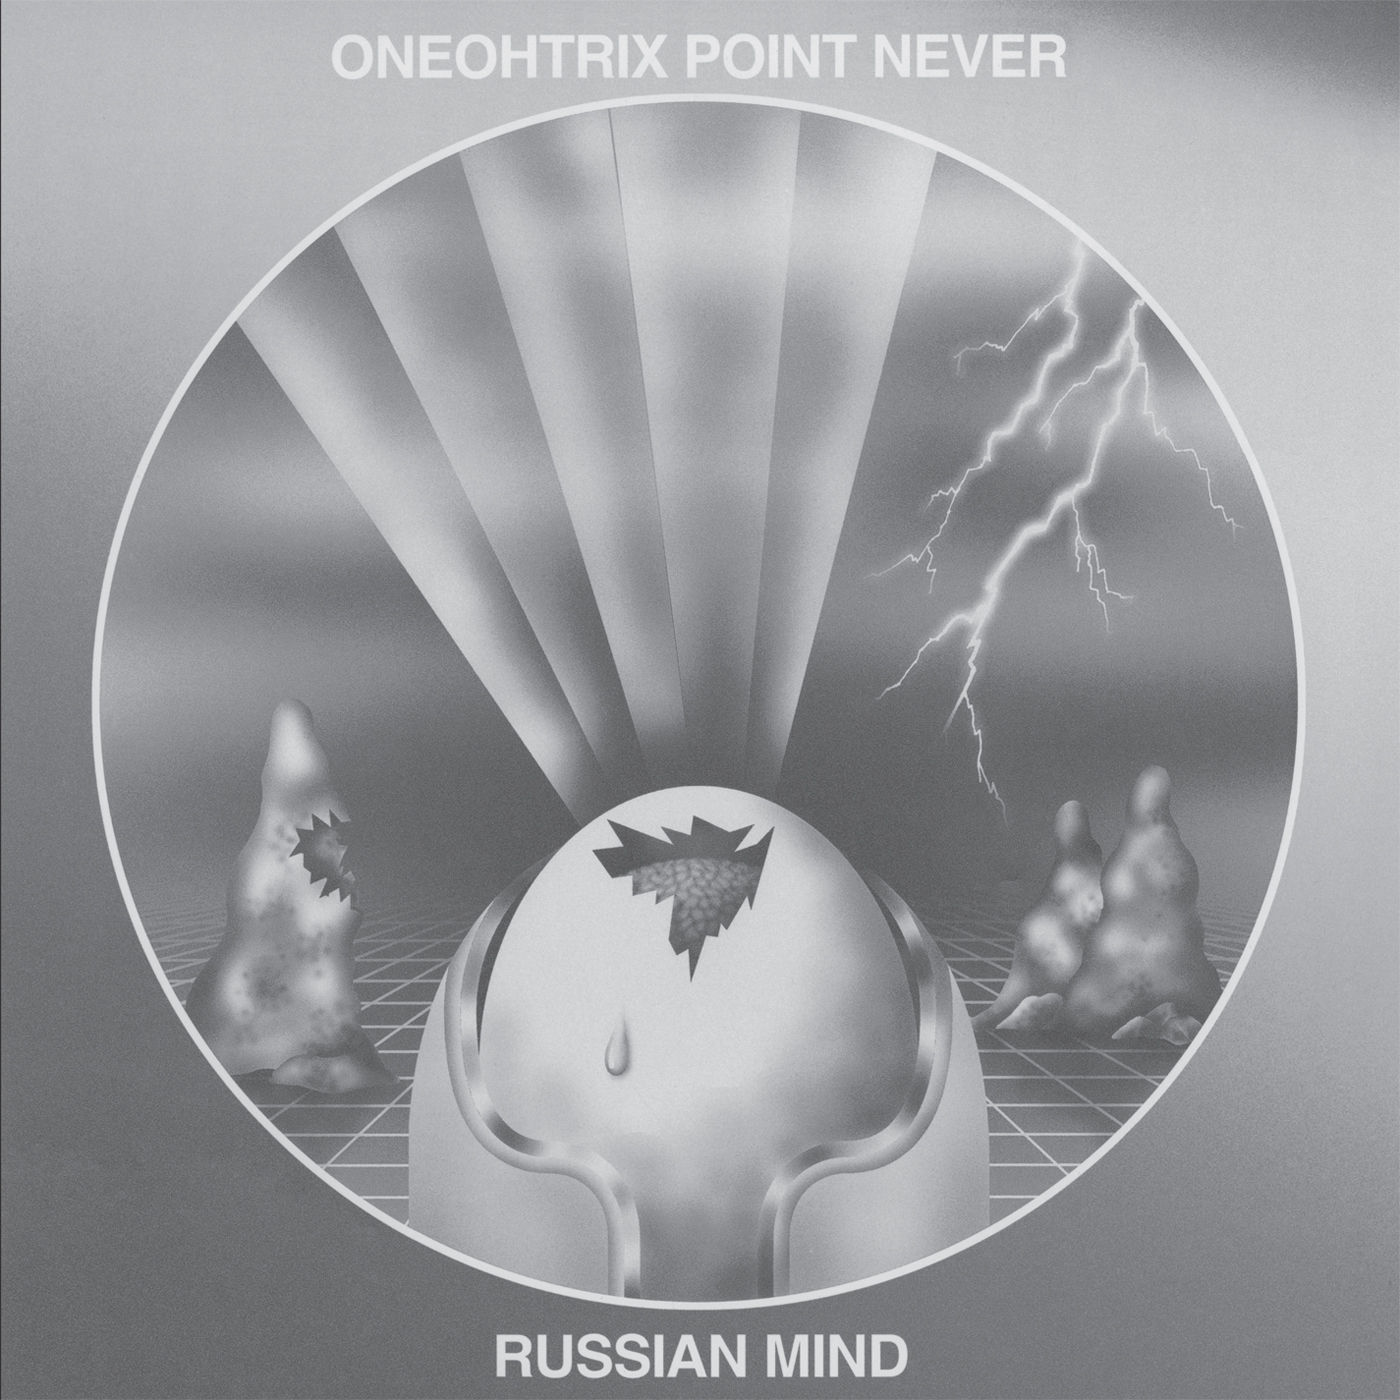 Oneohtrix Point Never - Russian Mind  [RSD Drops 2021]